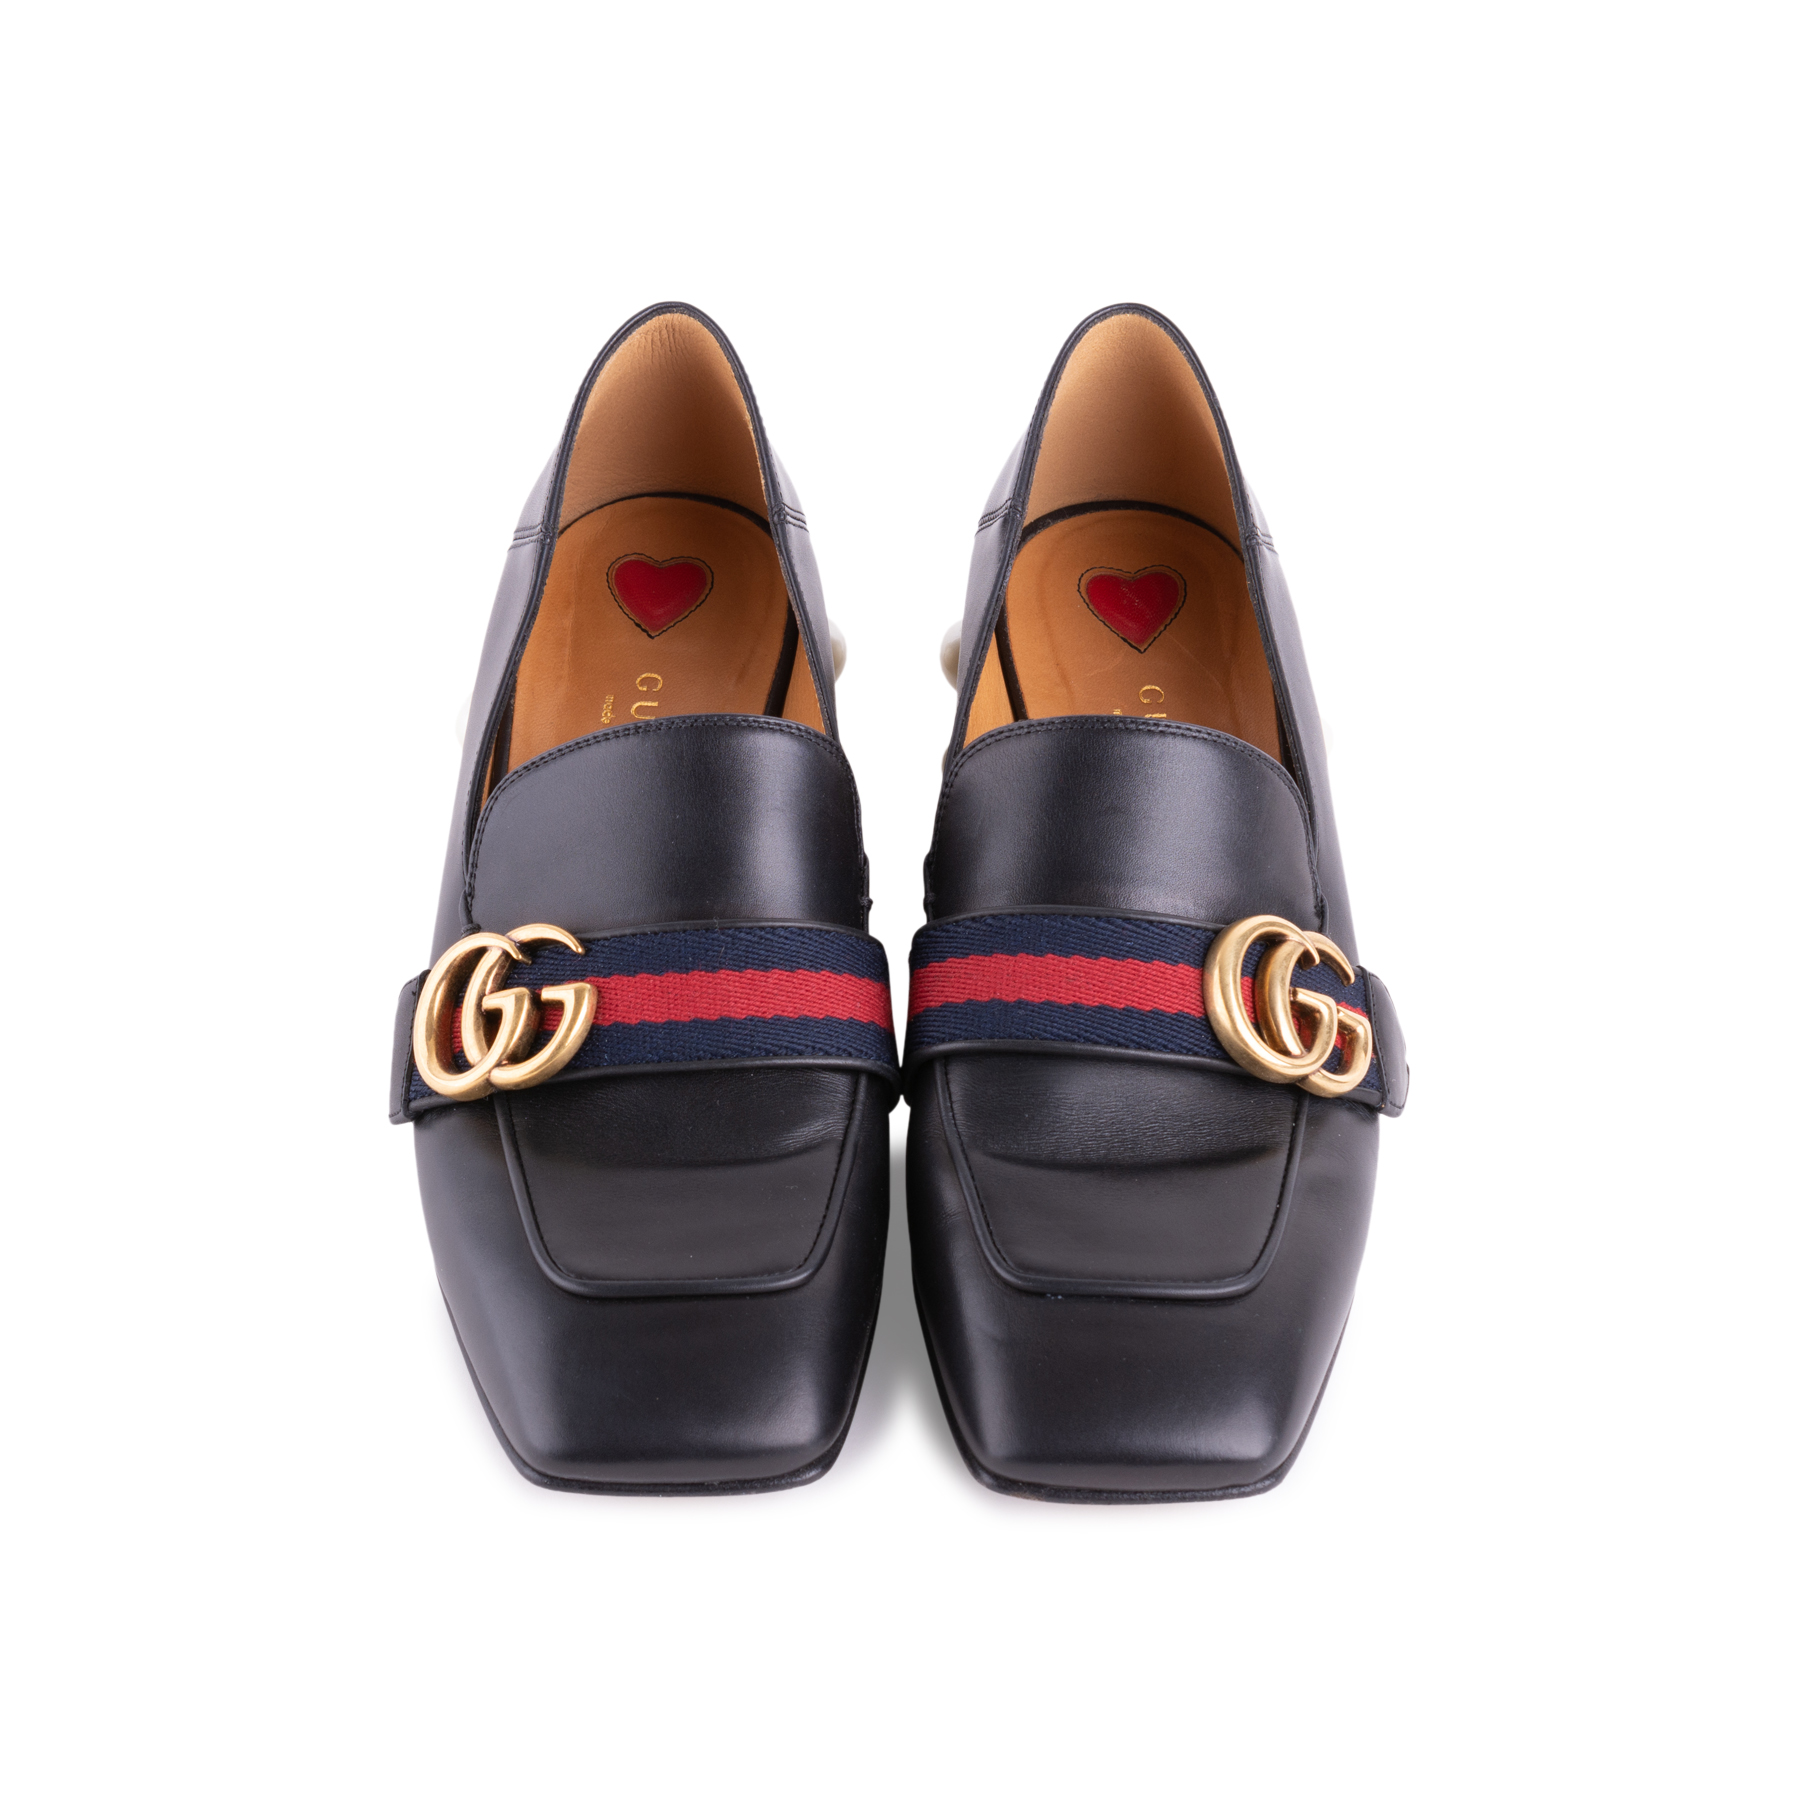 e2ad55a22 Authentic Second Hand Gucci Peyton Pearl-Embellished Heel Loafers  (PSS-607-00012) - THE FIFTH COLLECTION